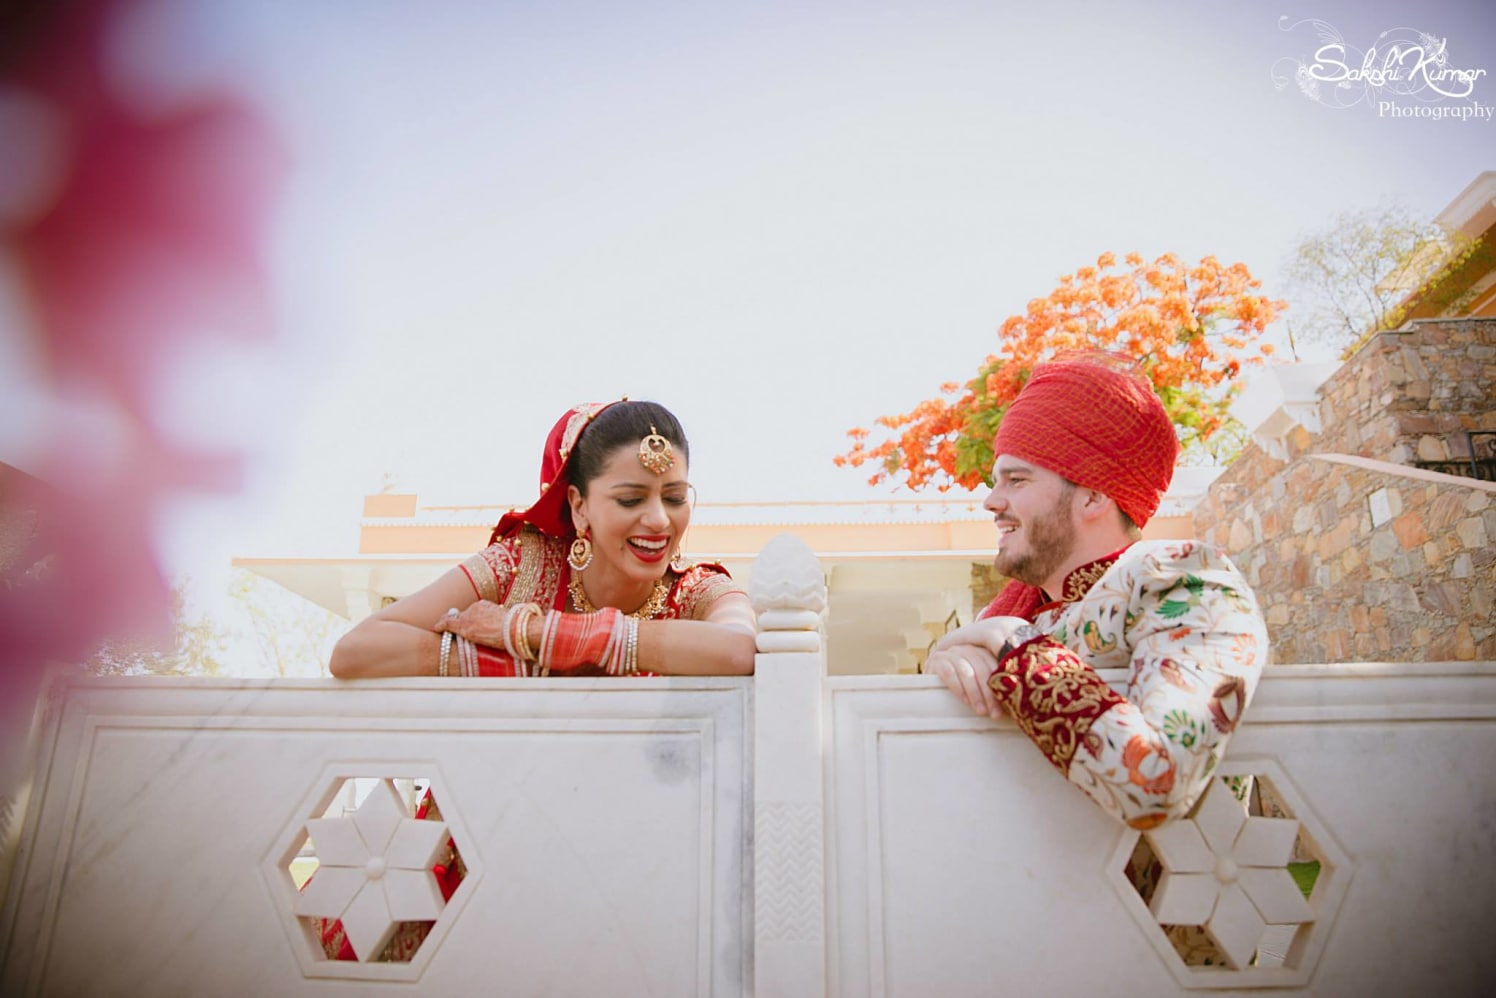 Royal Wedding Shoot At A Royal Destination by Sakshi Kumar Wedding-photography | Weddings Photos & Ideas